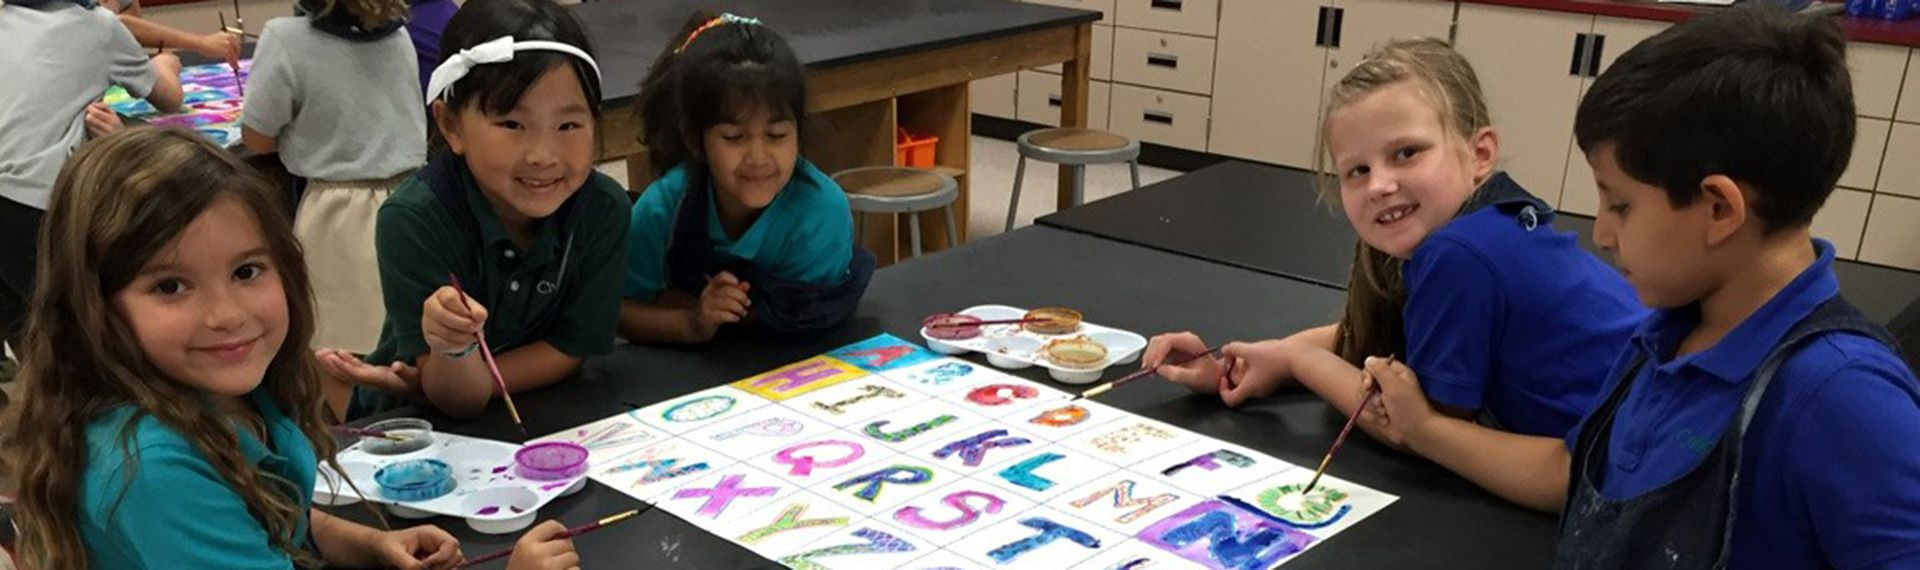 Lower School students create visual art.